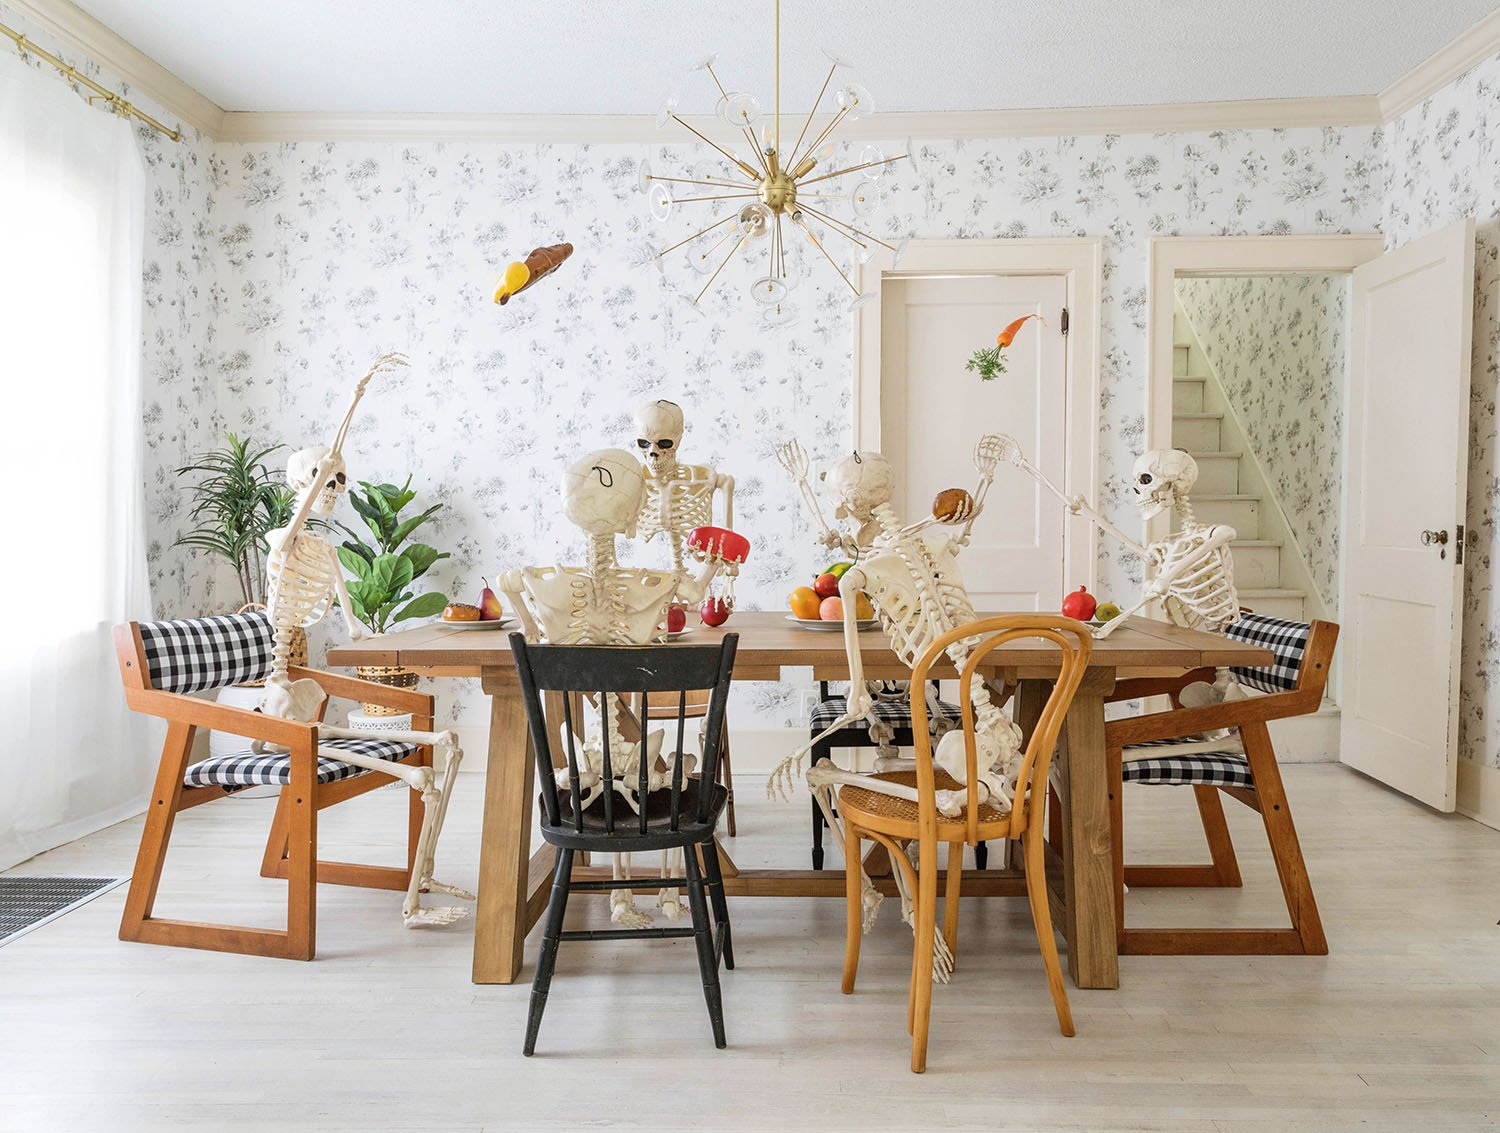 5 Ways to Decorate with Skeletons